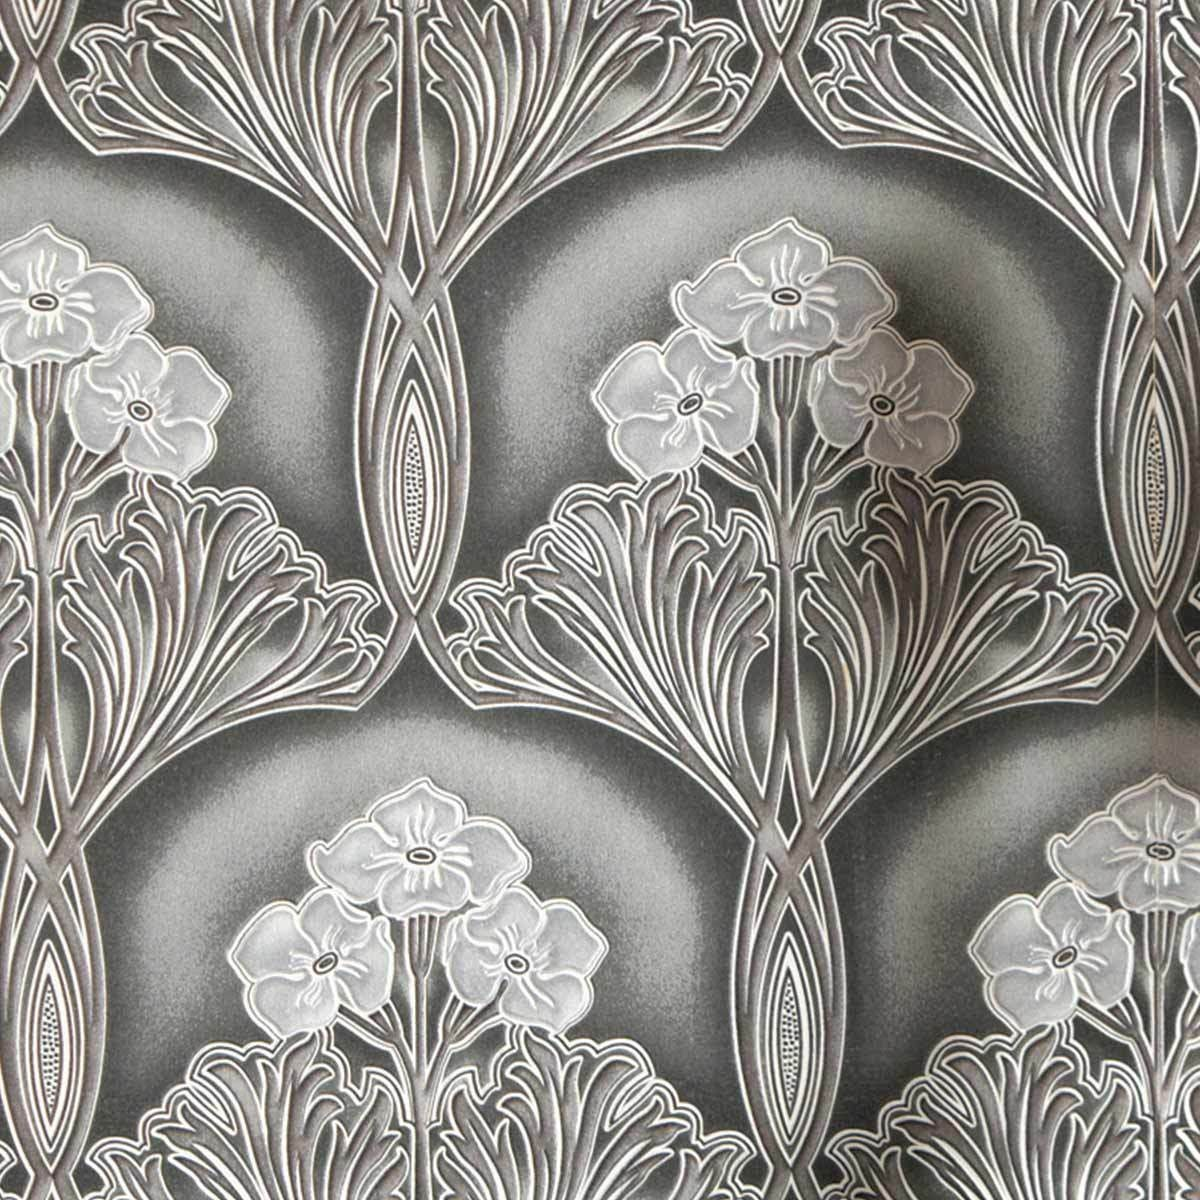 Choose Distinct Wallpaper to Set It Apart